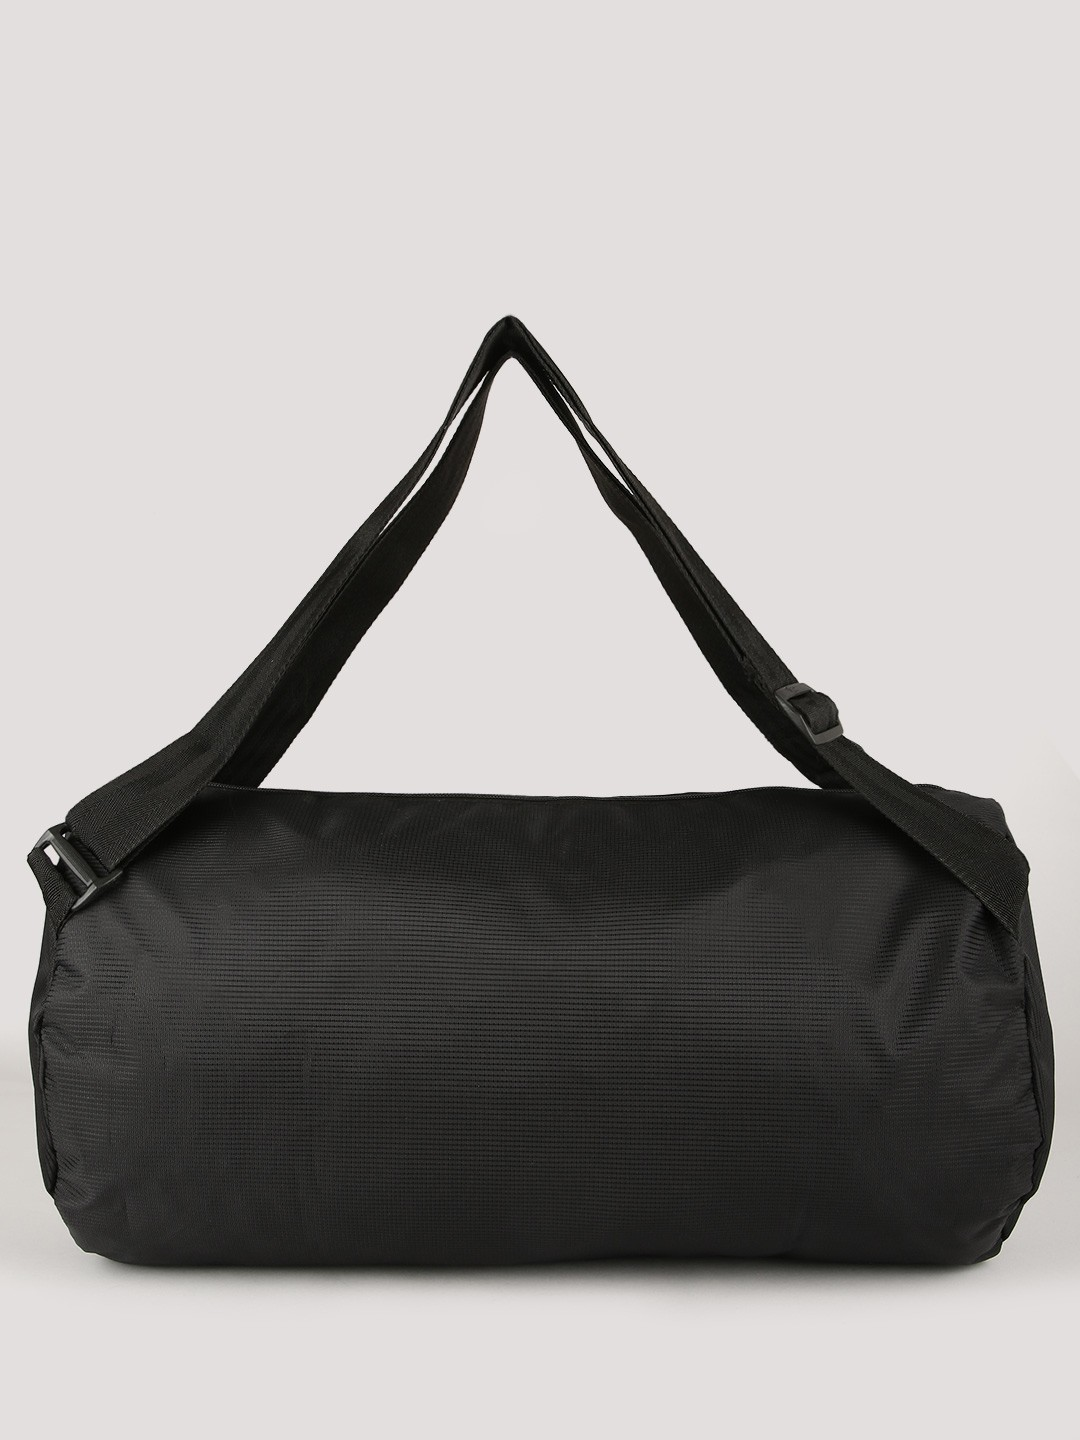 9beade000 Buy Gym Duffle Bags Online India | Stanford Center for Opportunity ...